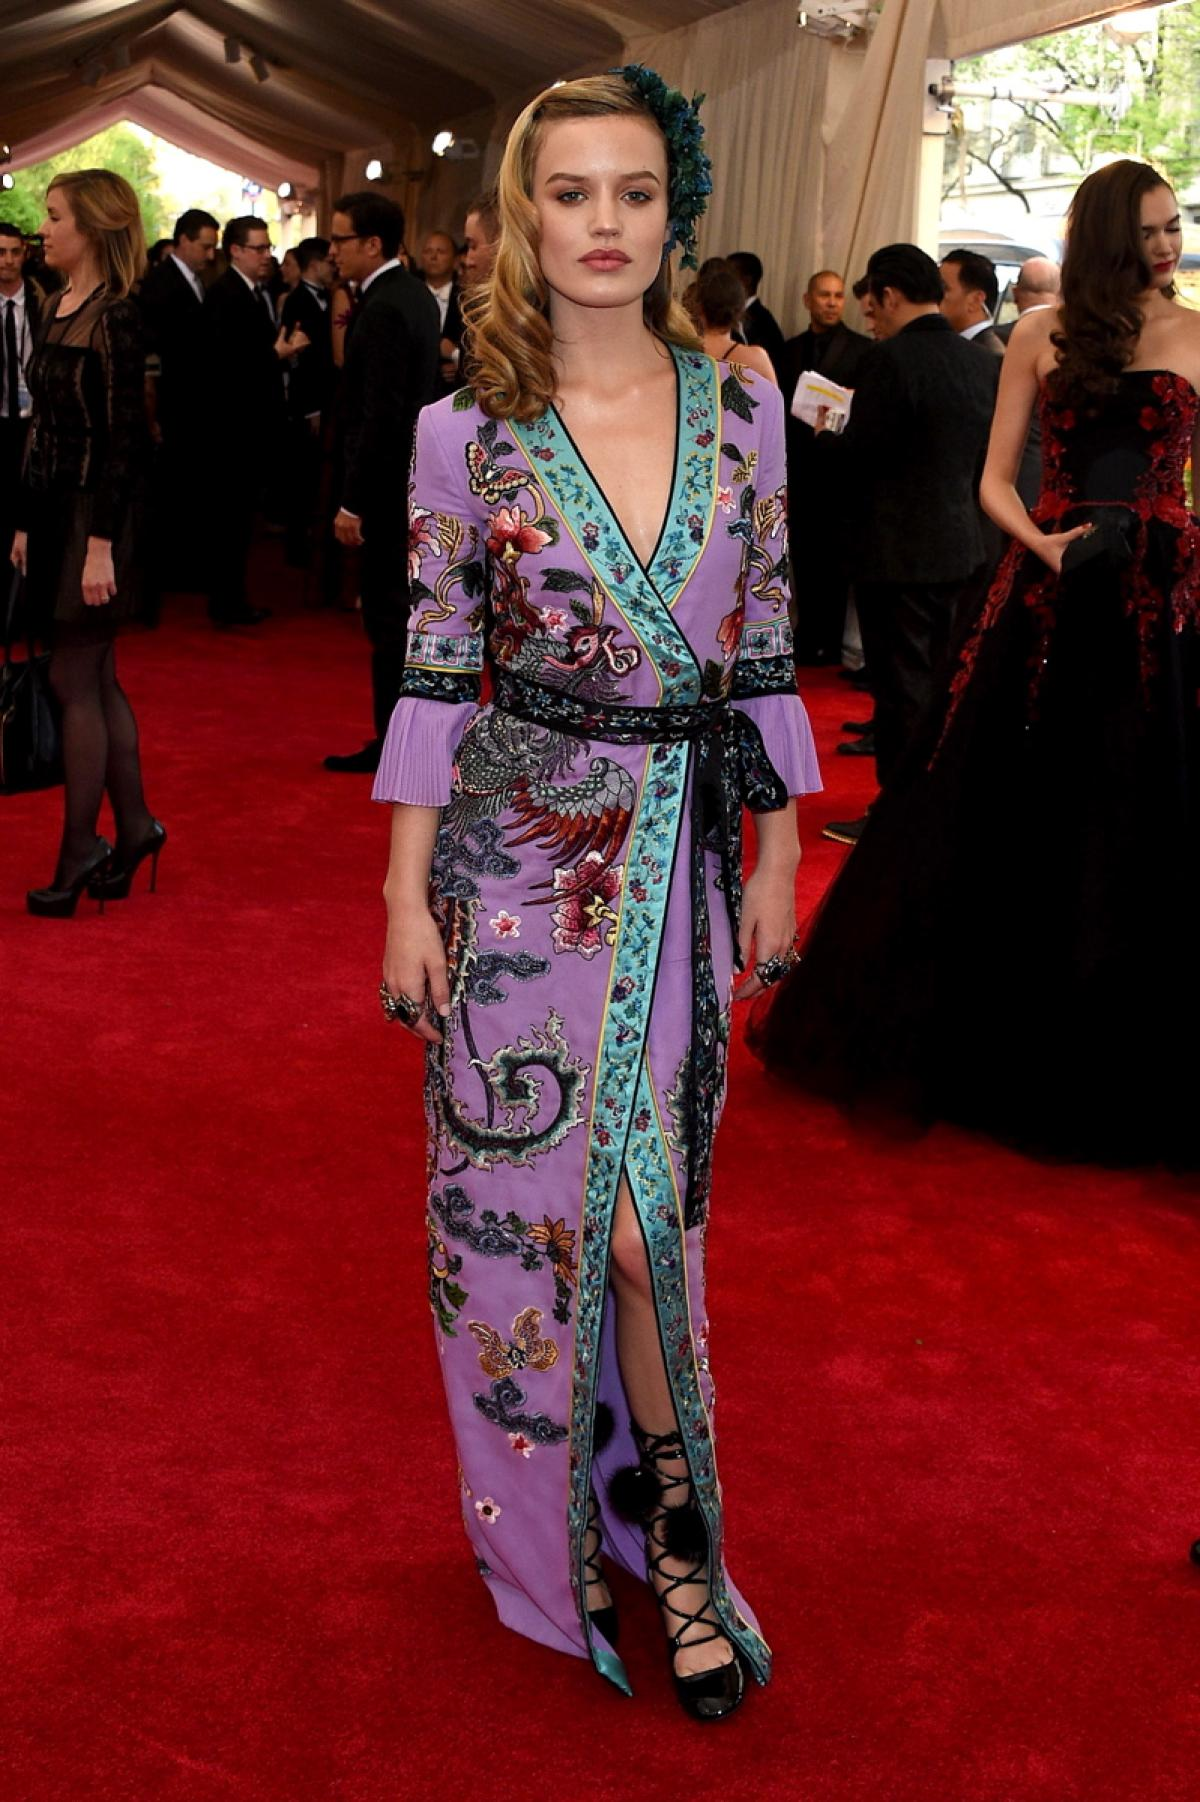 Georgia May Jagger looked lovely in an embellished Gucci robe.